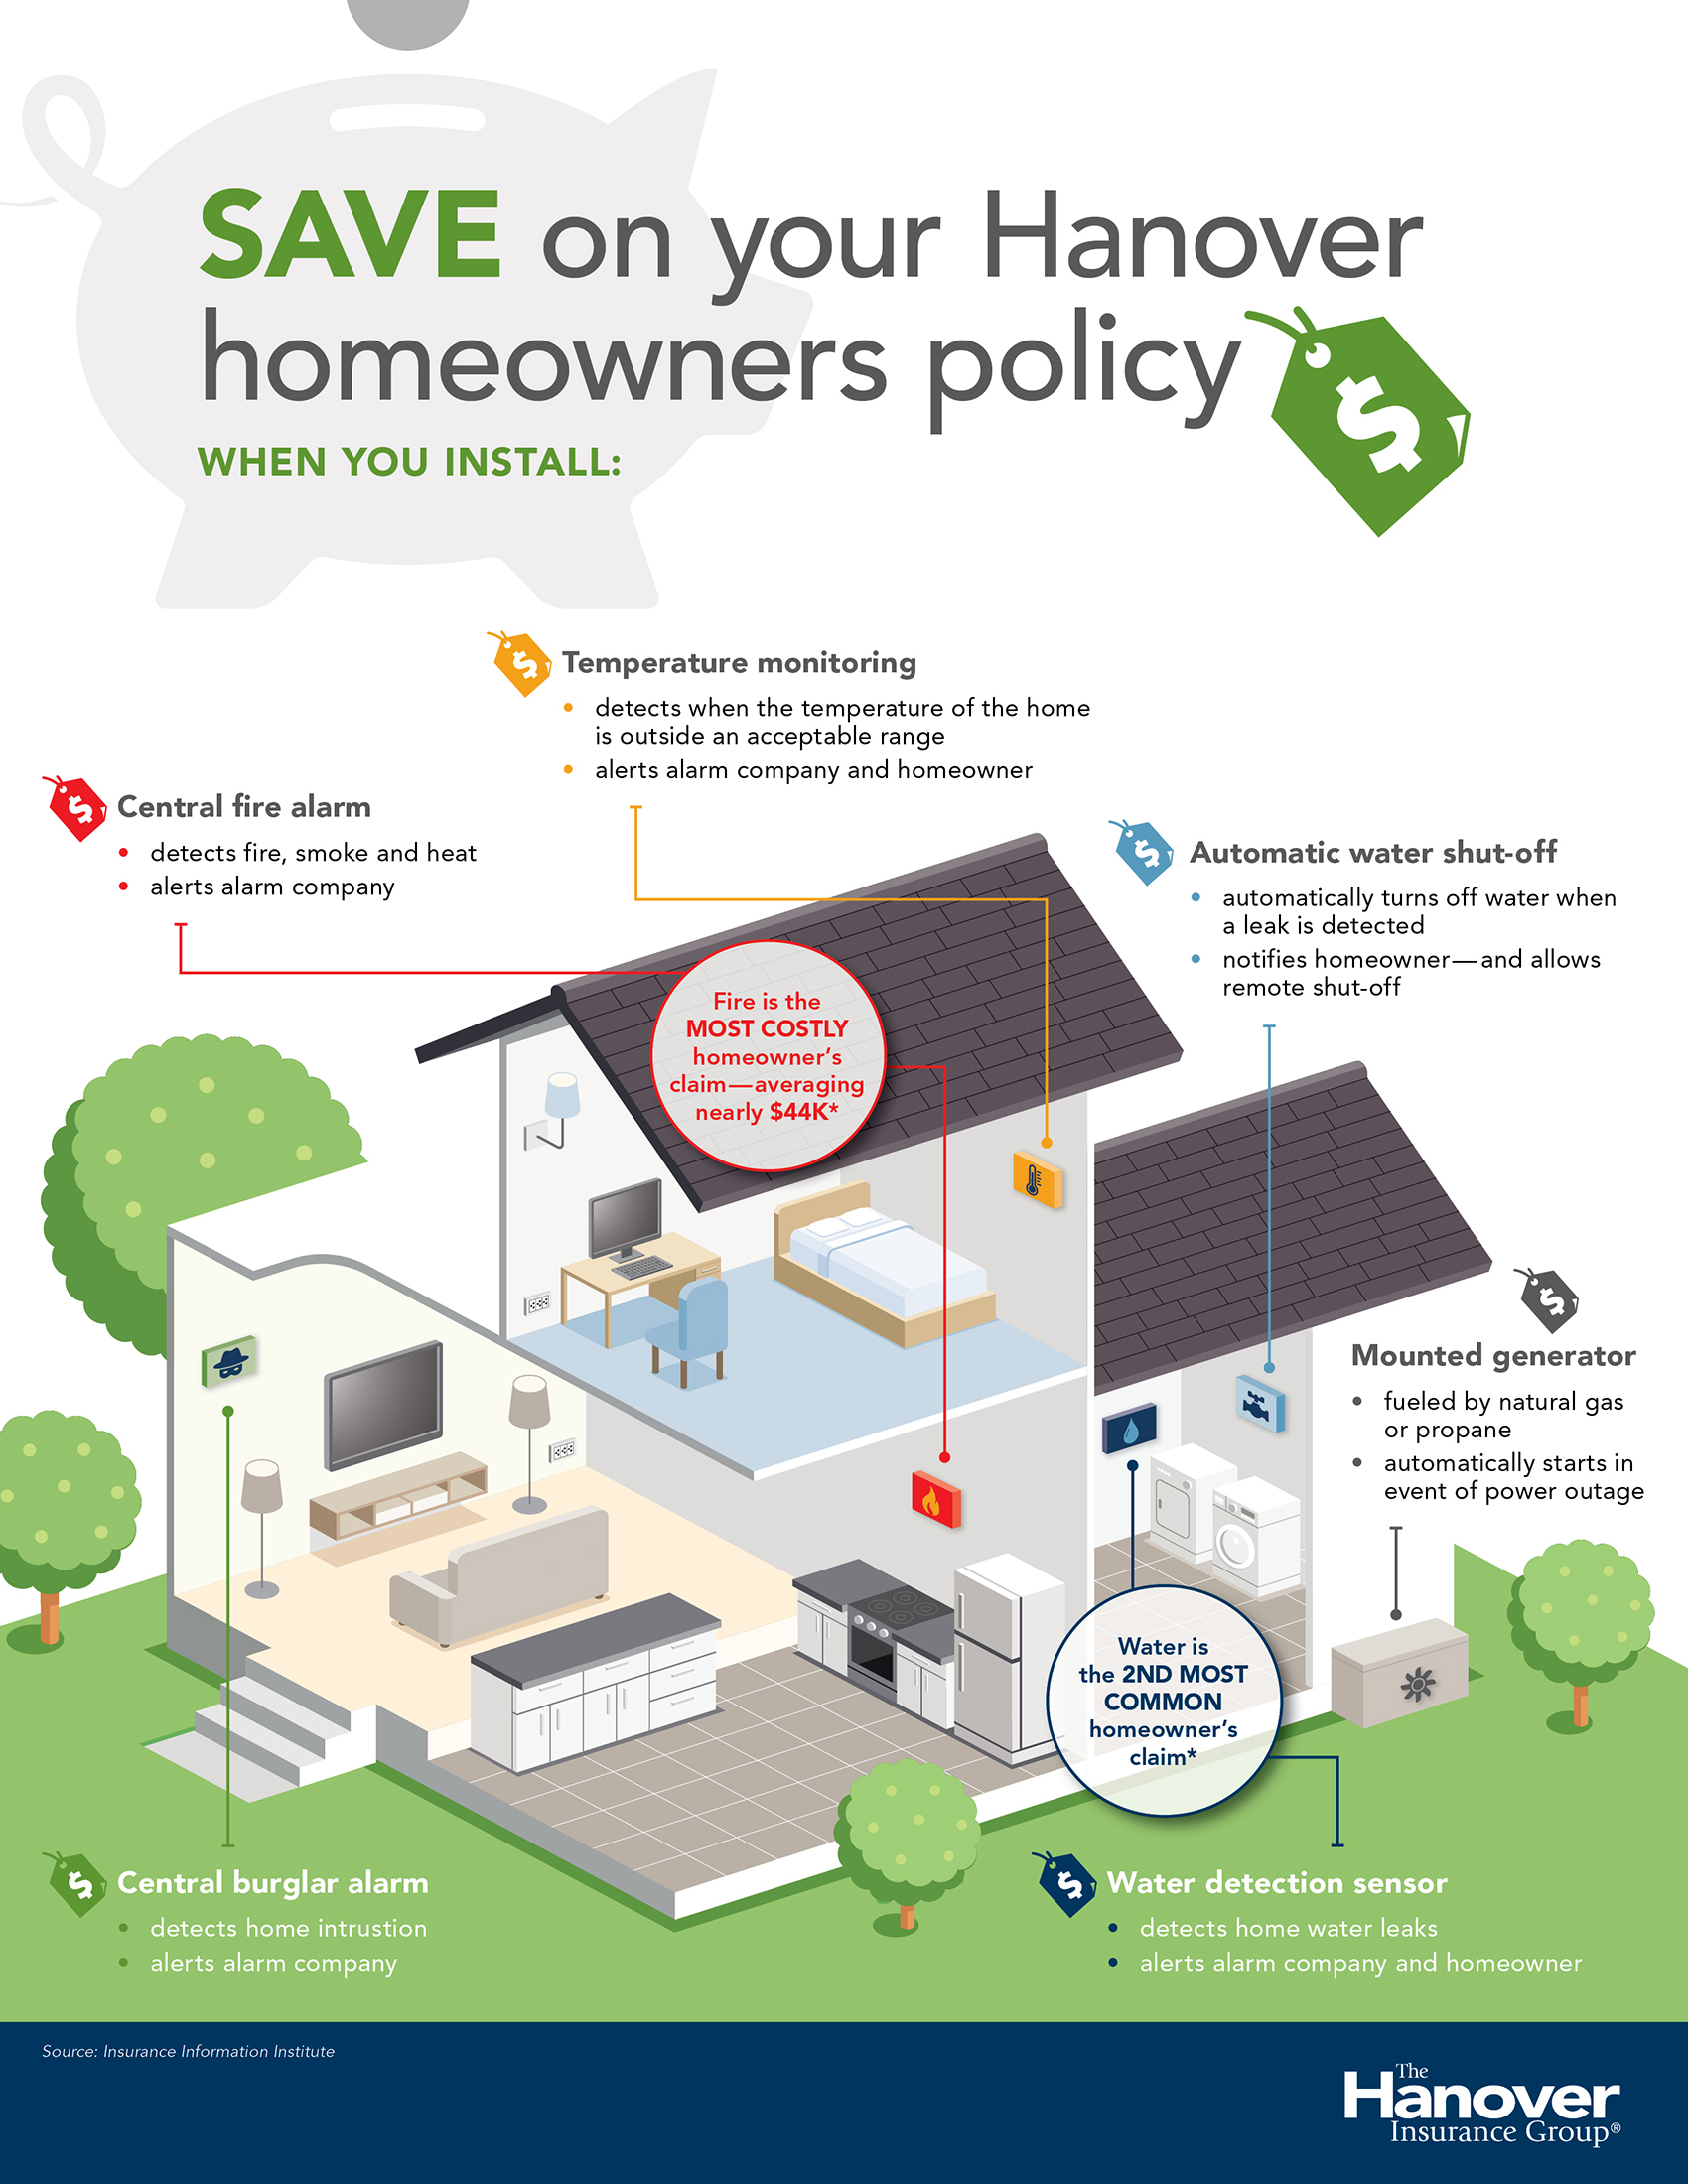 Infographic illustrating how the installation of home safety devices can save homeowners money on their insurance with The Hanover